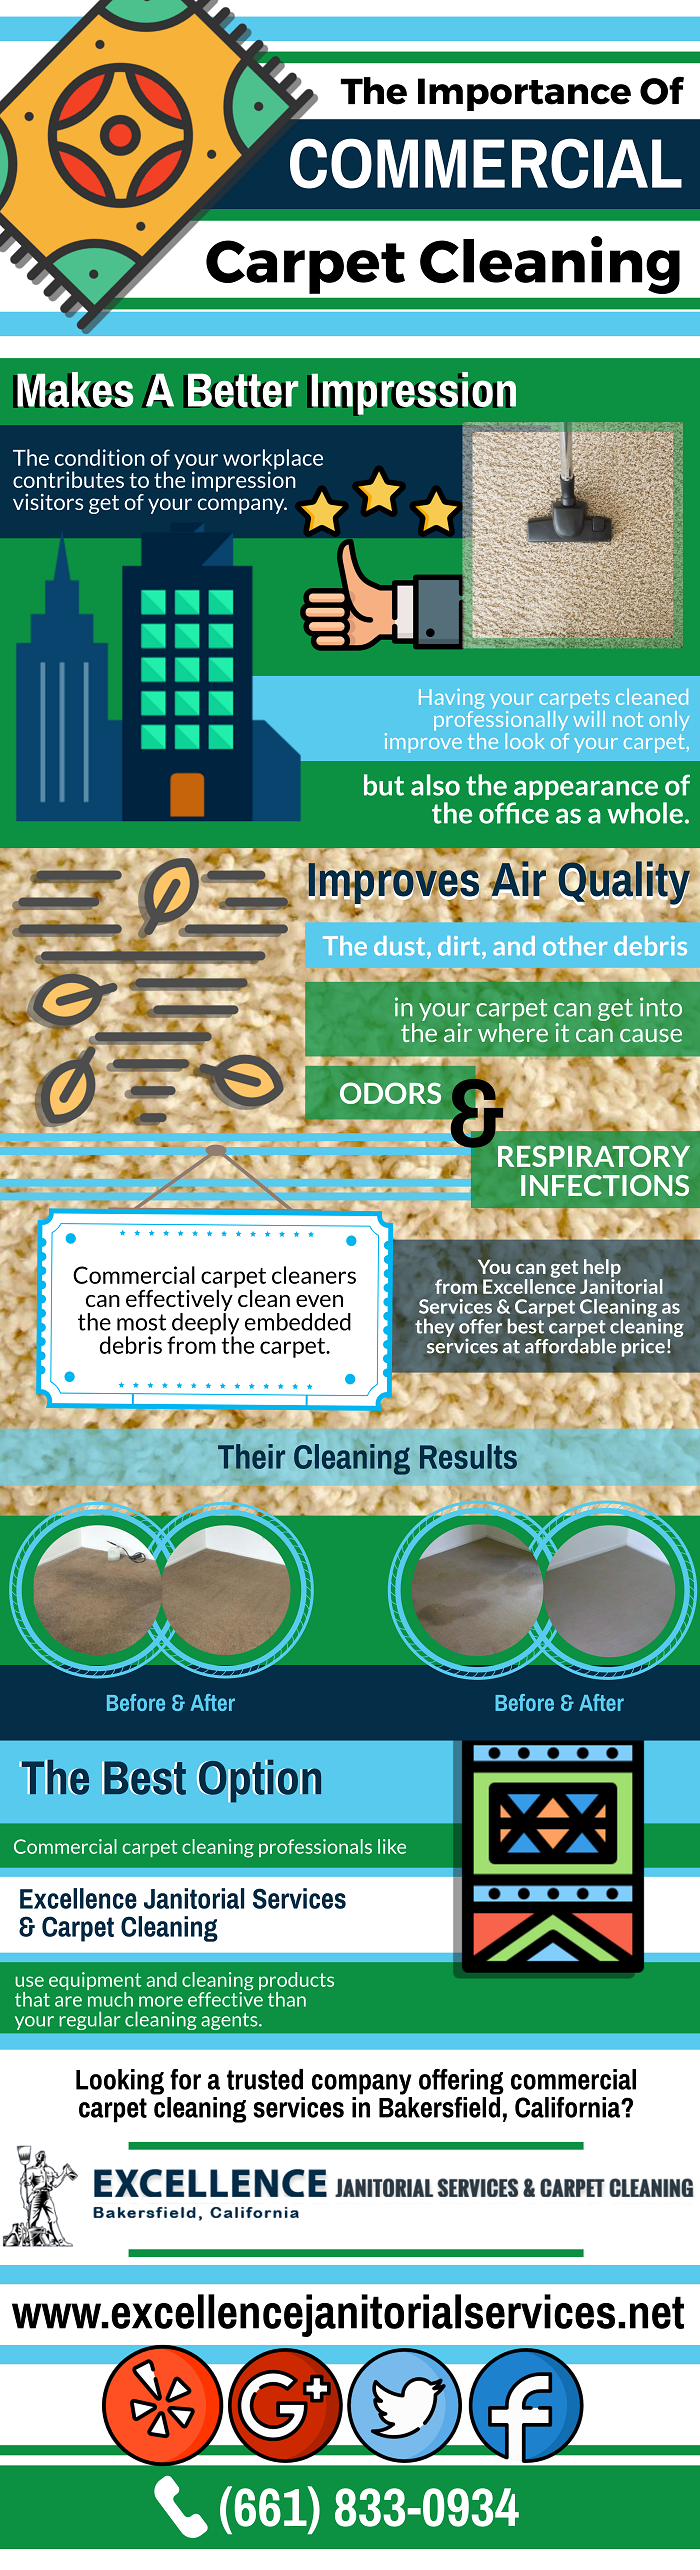 The Importance of Commercial Carpet Cleaning